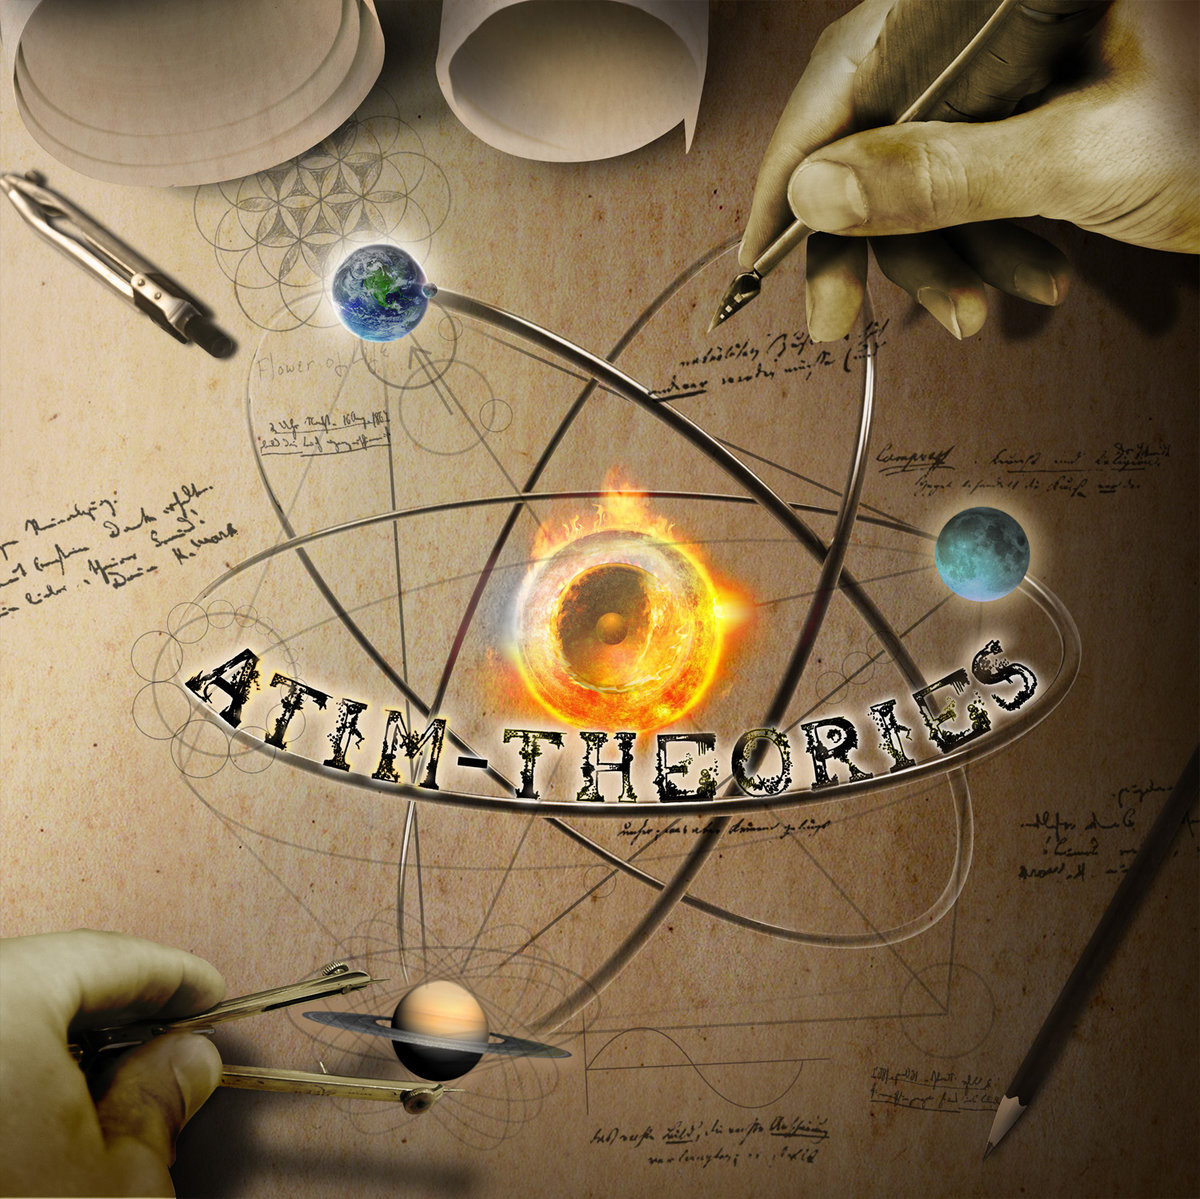 Atim - Theories (Album artwork)